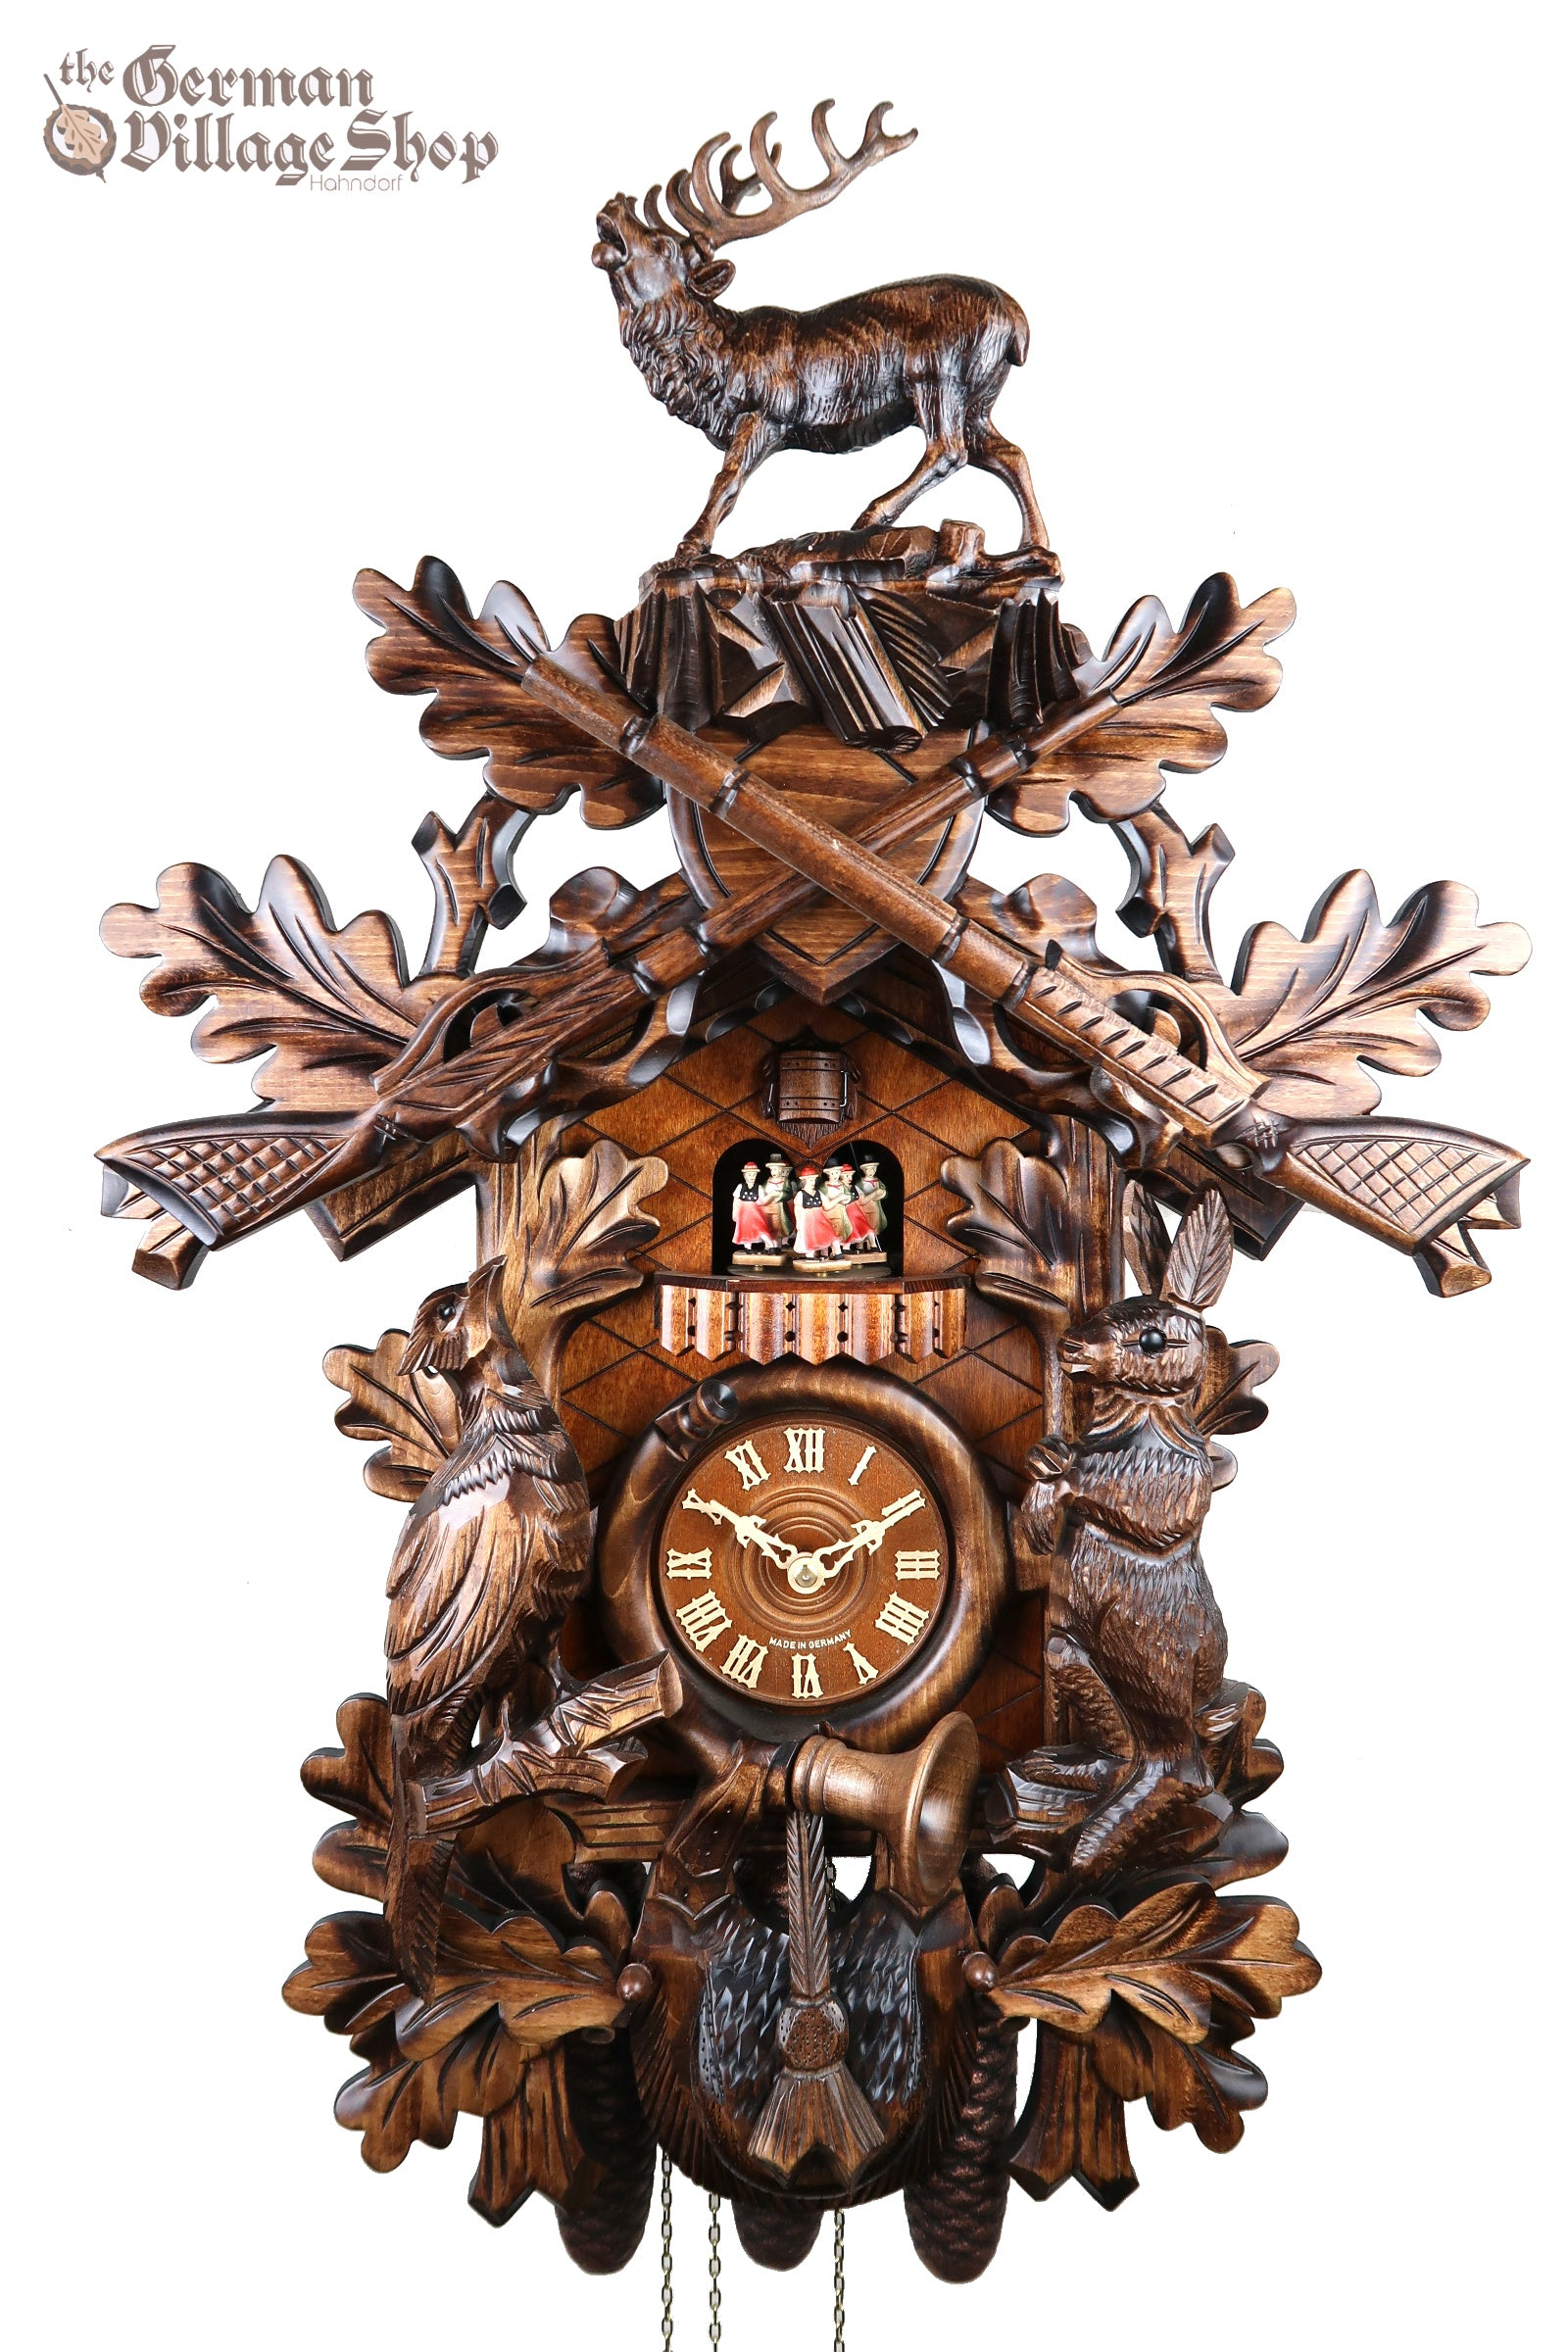 Hunting Cuckoo Clock for sale